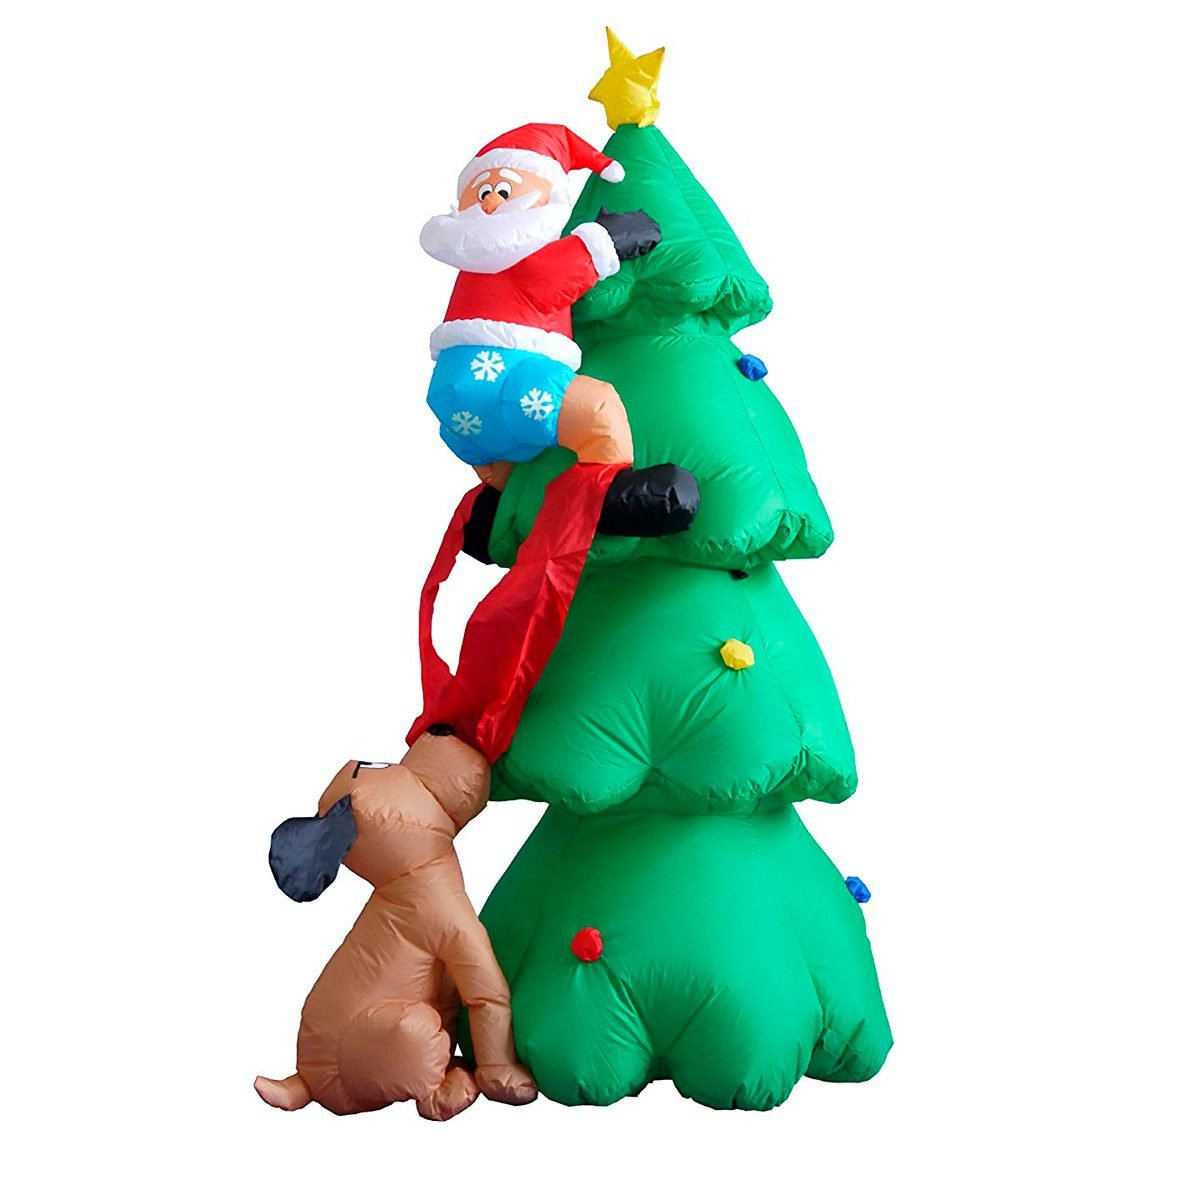 Christmas Tree Inflatables.11 Christmas Inflatables Your Neighbors Might Not Like